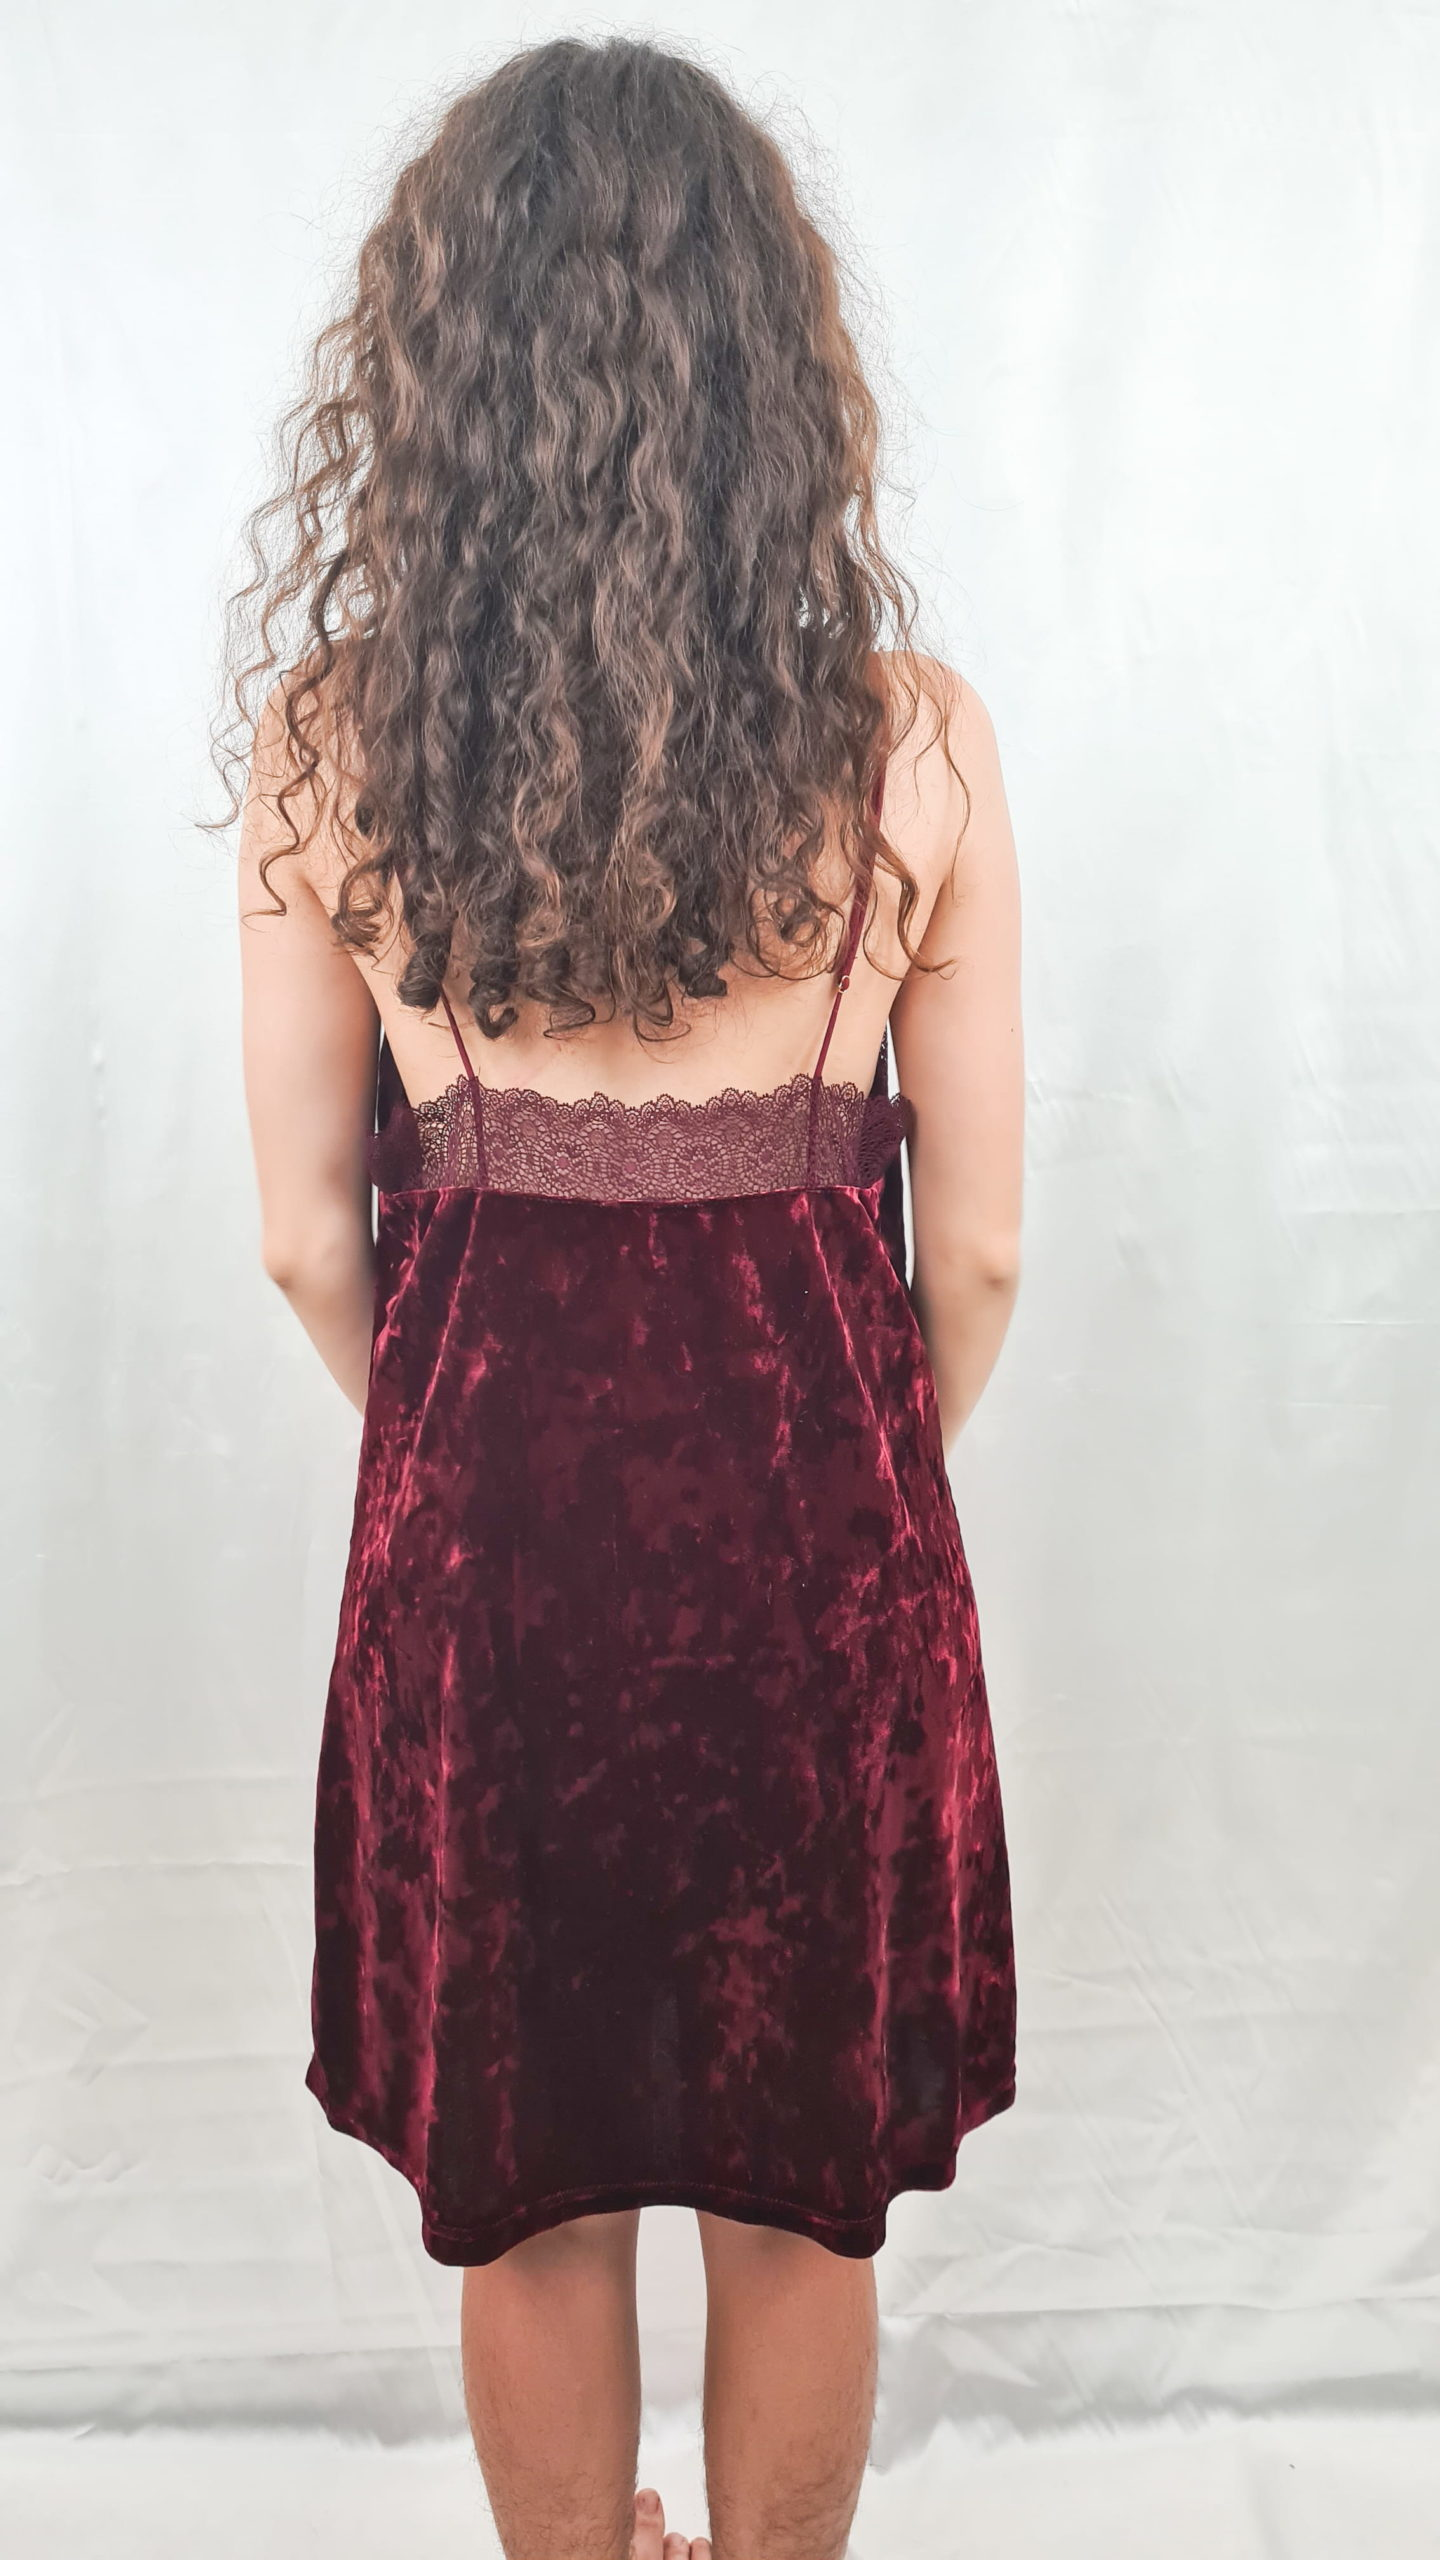 robe bordeaux en velours (3)